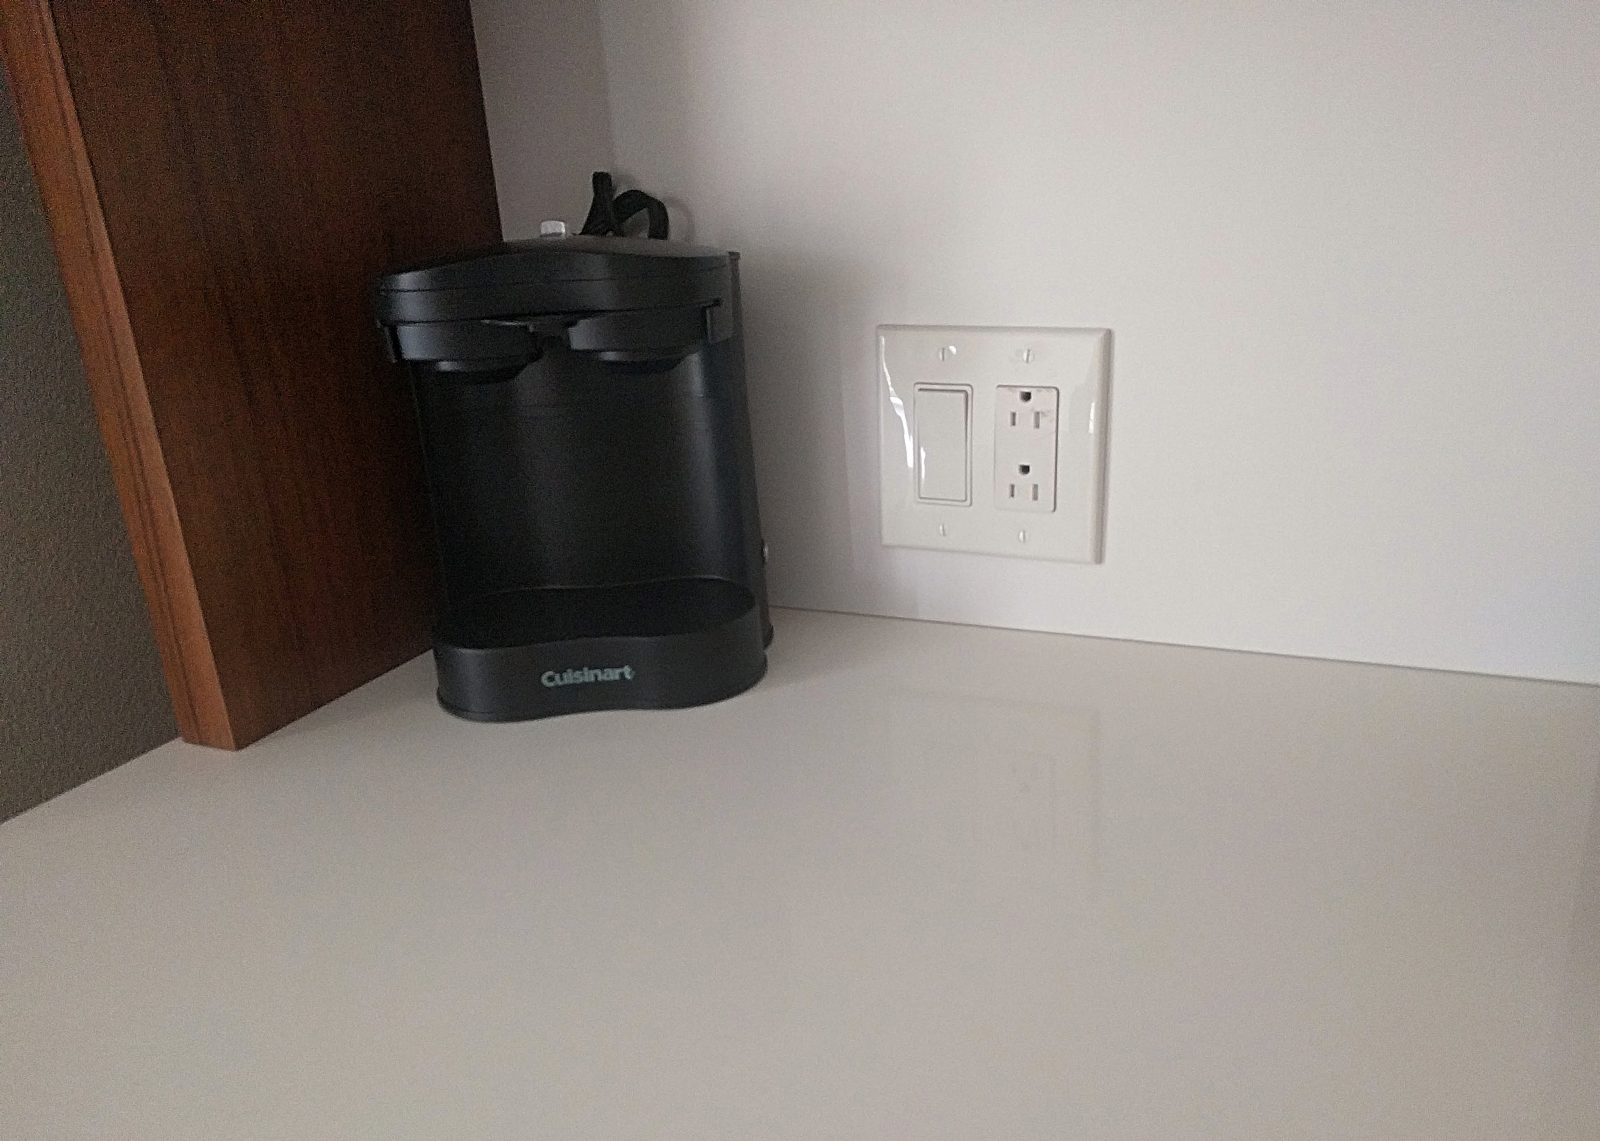 coffee maker provided in the room